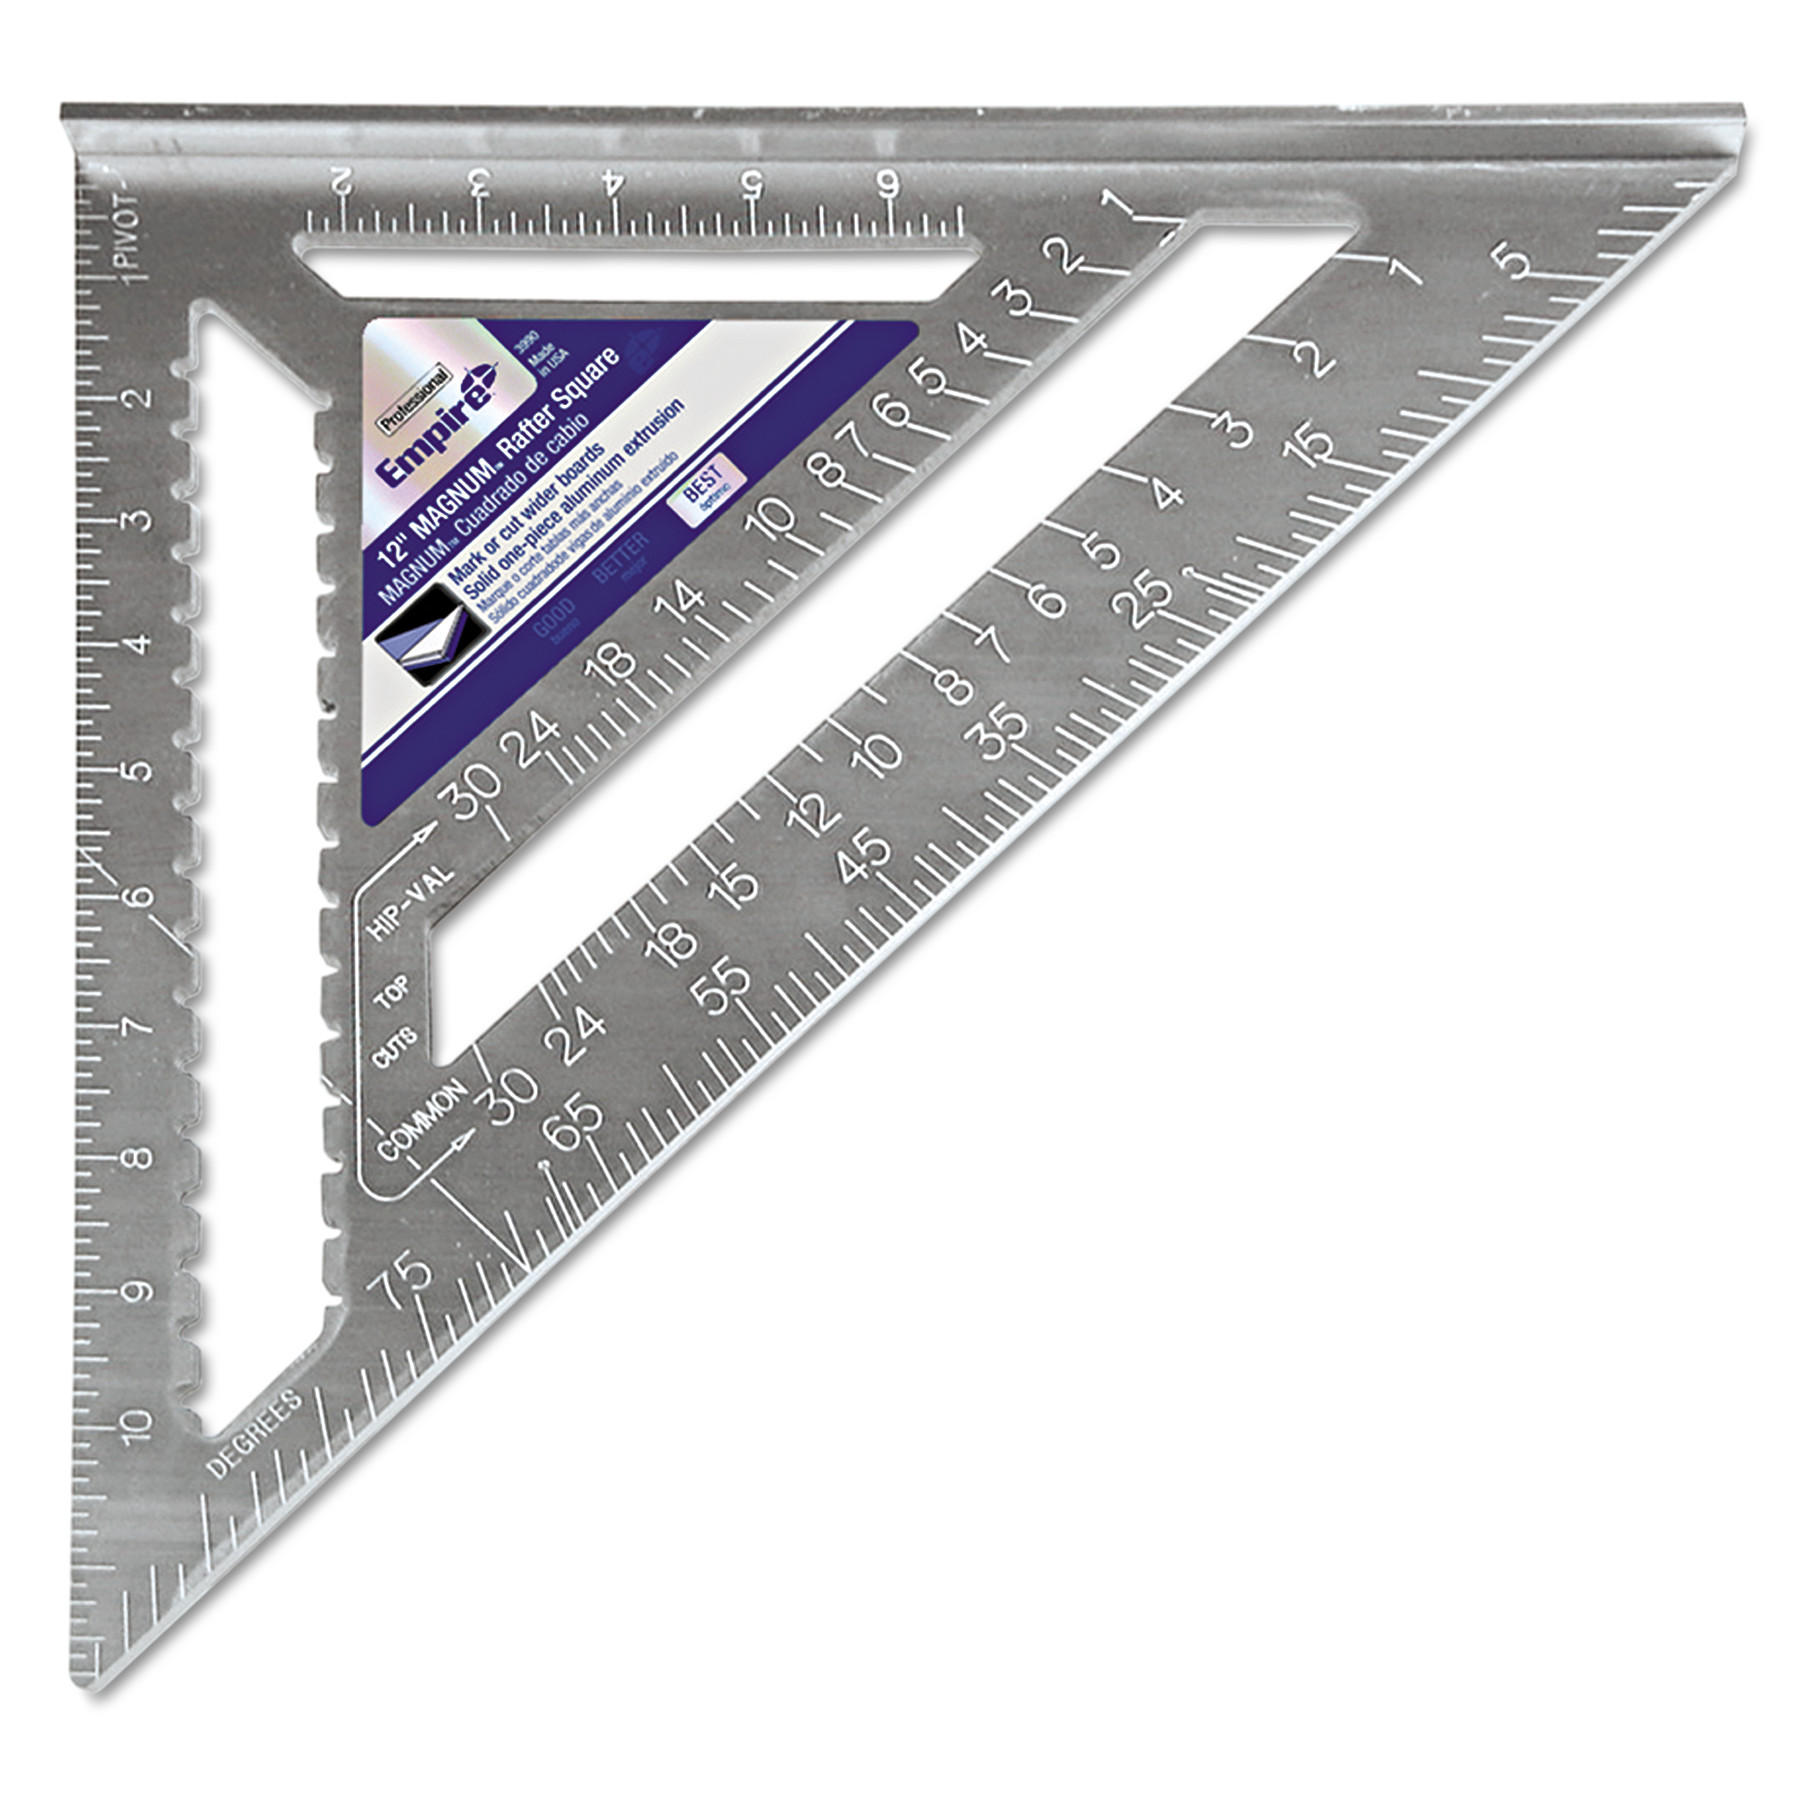 Empire 12 in. Heavy-Duty Magnum Rafter Square by EMPIRE LEVEL INCORPORATED